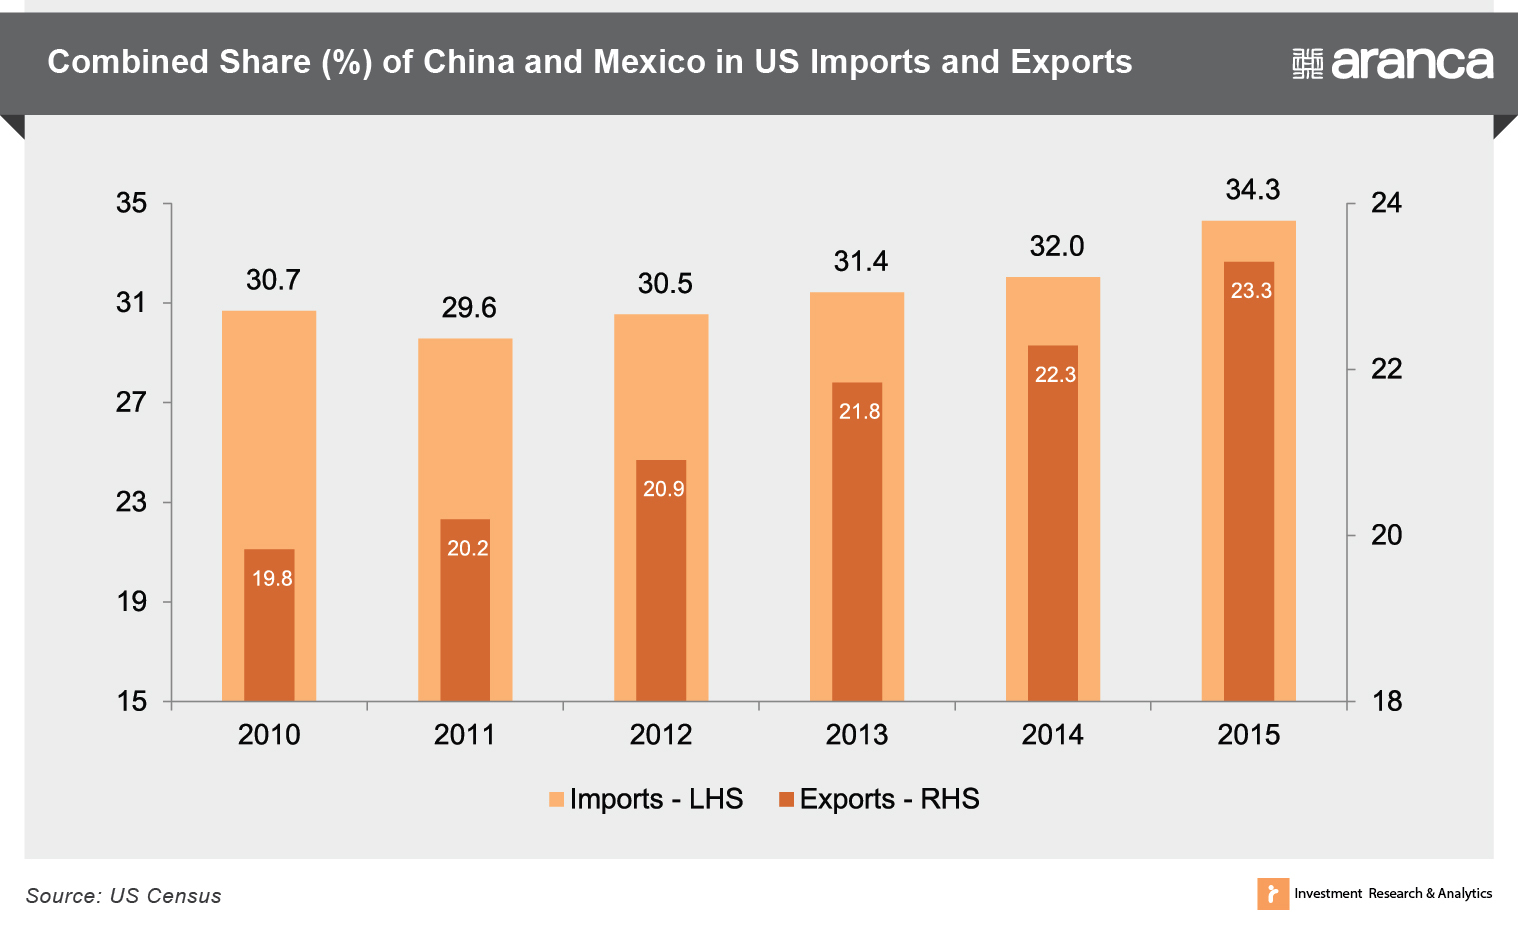 Combined Share (%) of China and Mexico in US Imports and Exports